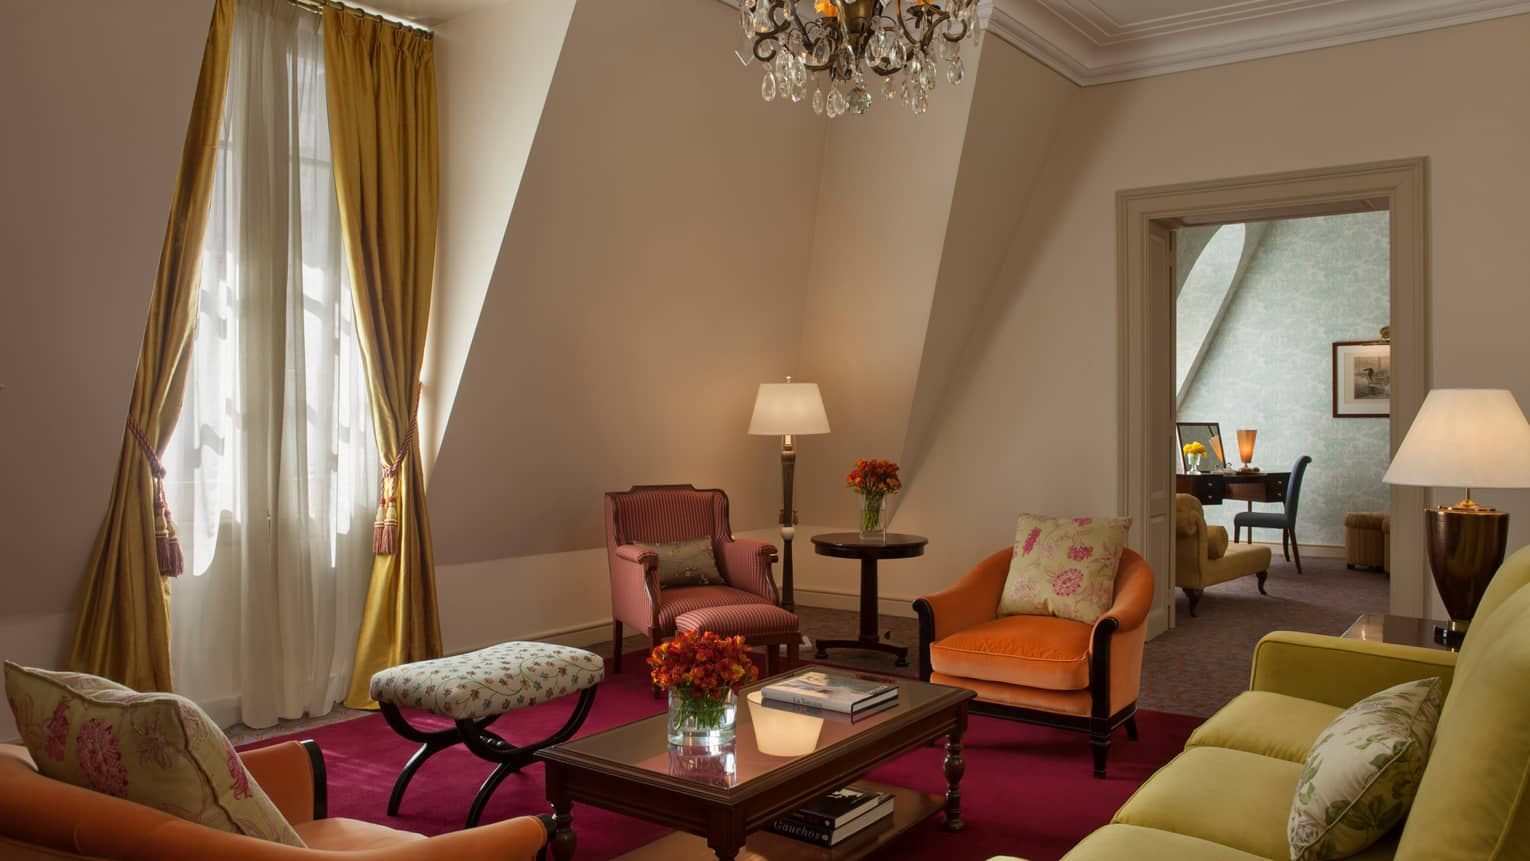 La Mansión Ambassador Suite with pink and orange velvet armchairs, yellow sofa under sloped walls, small crystal chandelier